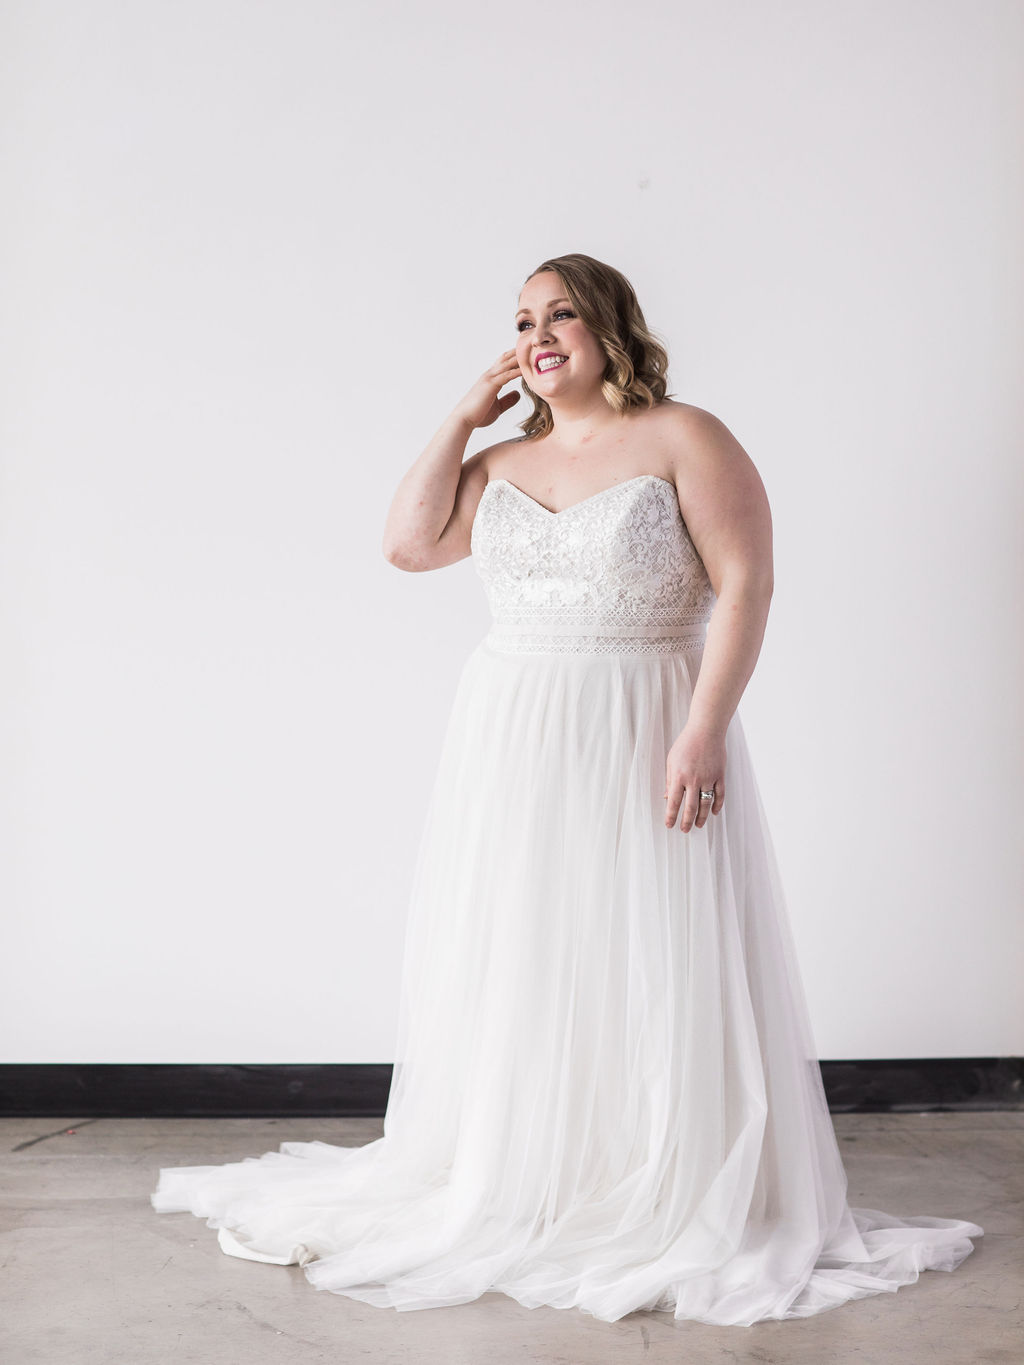 Plus size bride wedding dress spokane